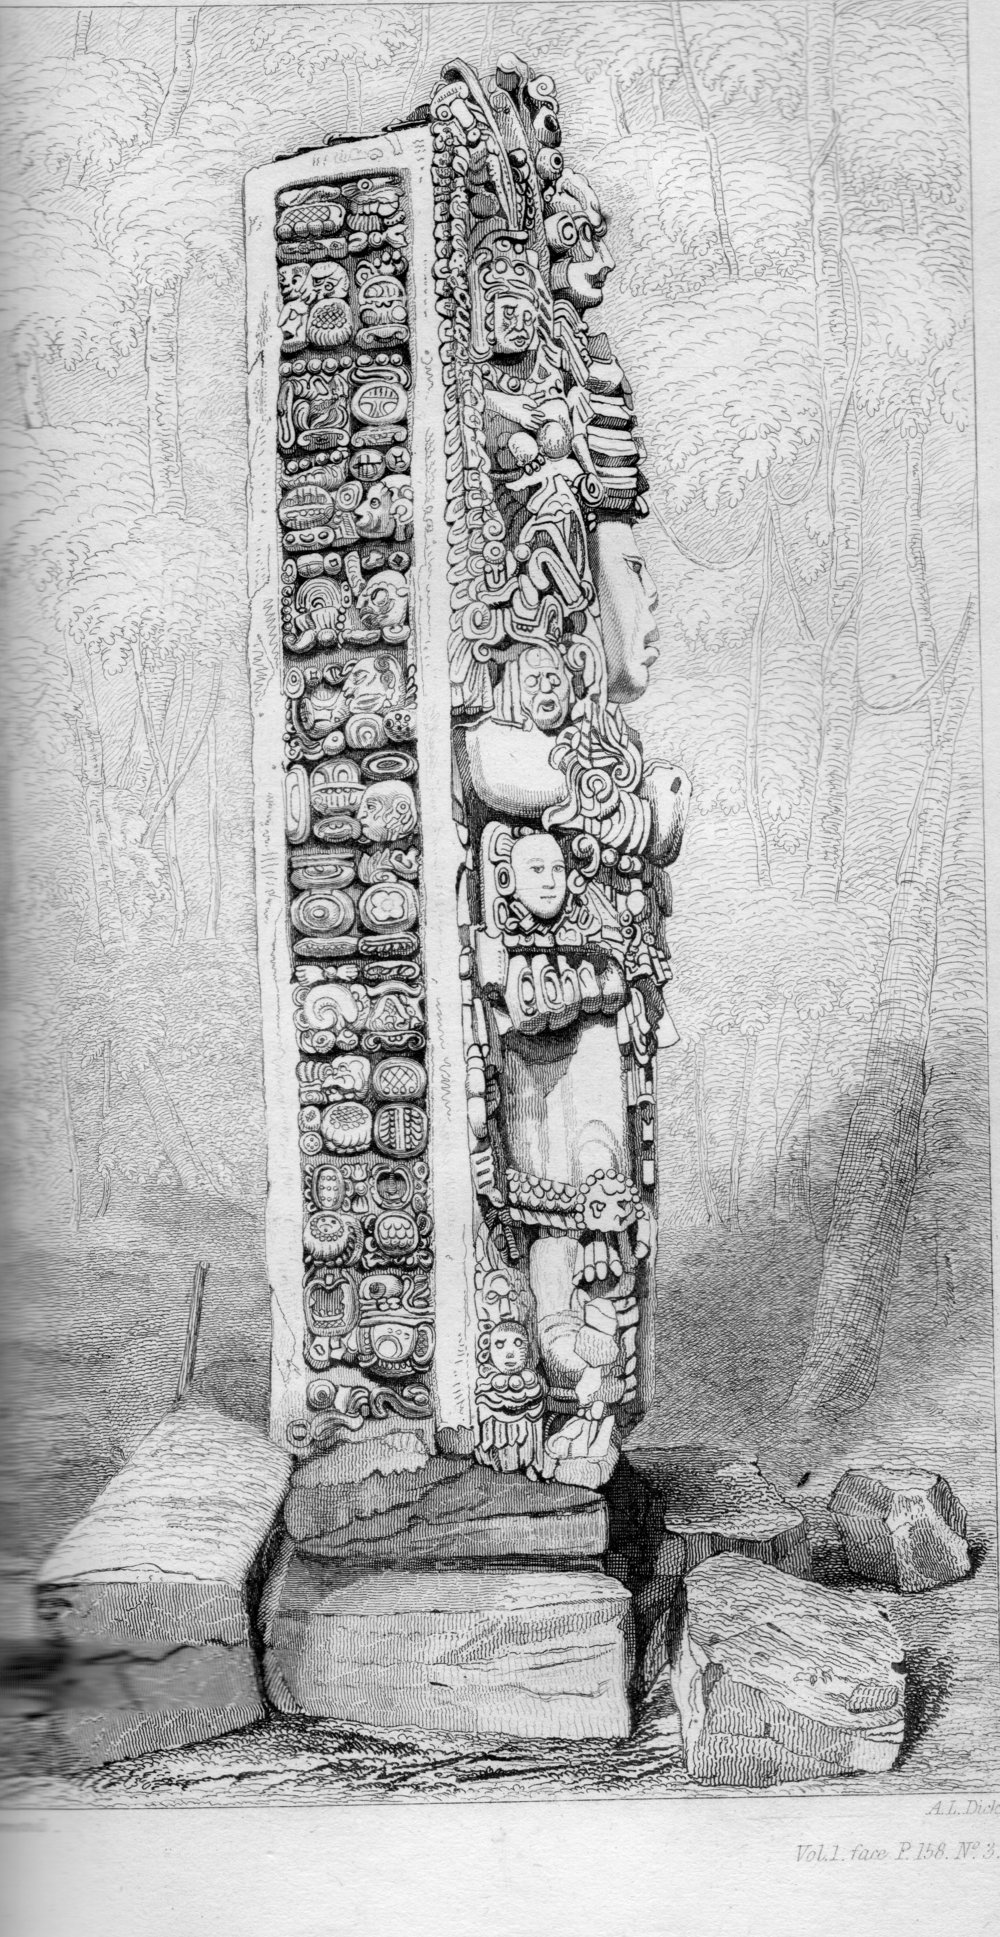 Catherwood's illustration at Copan